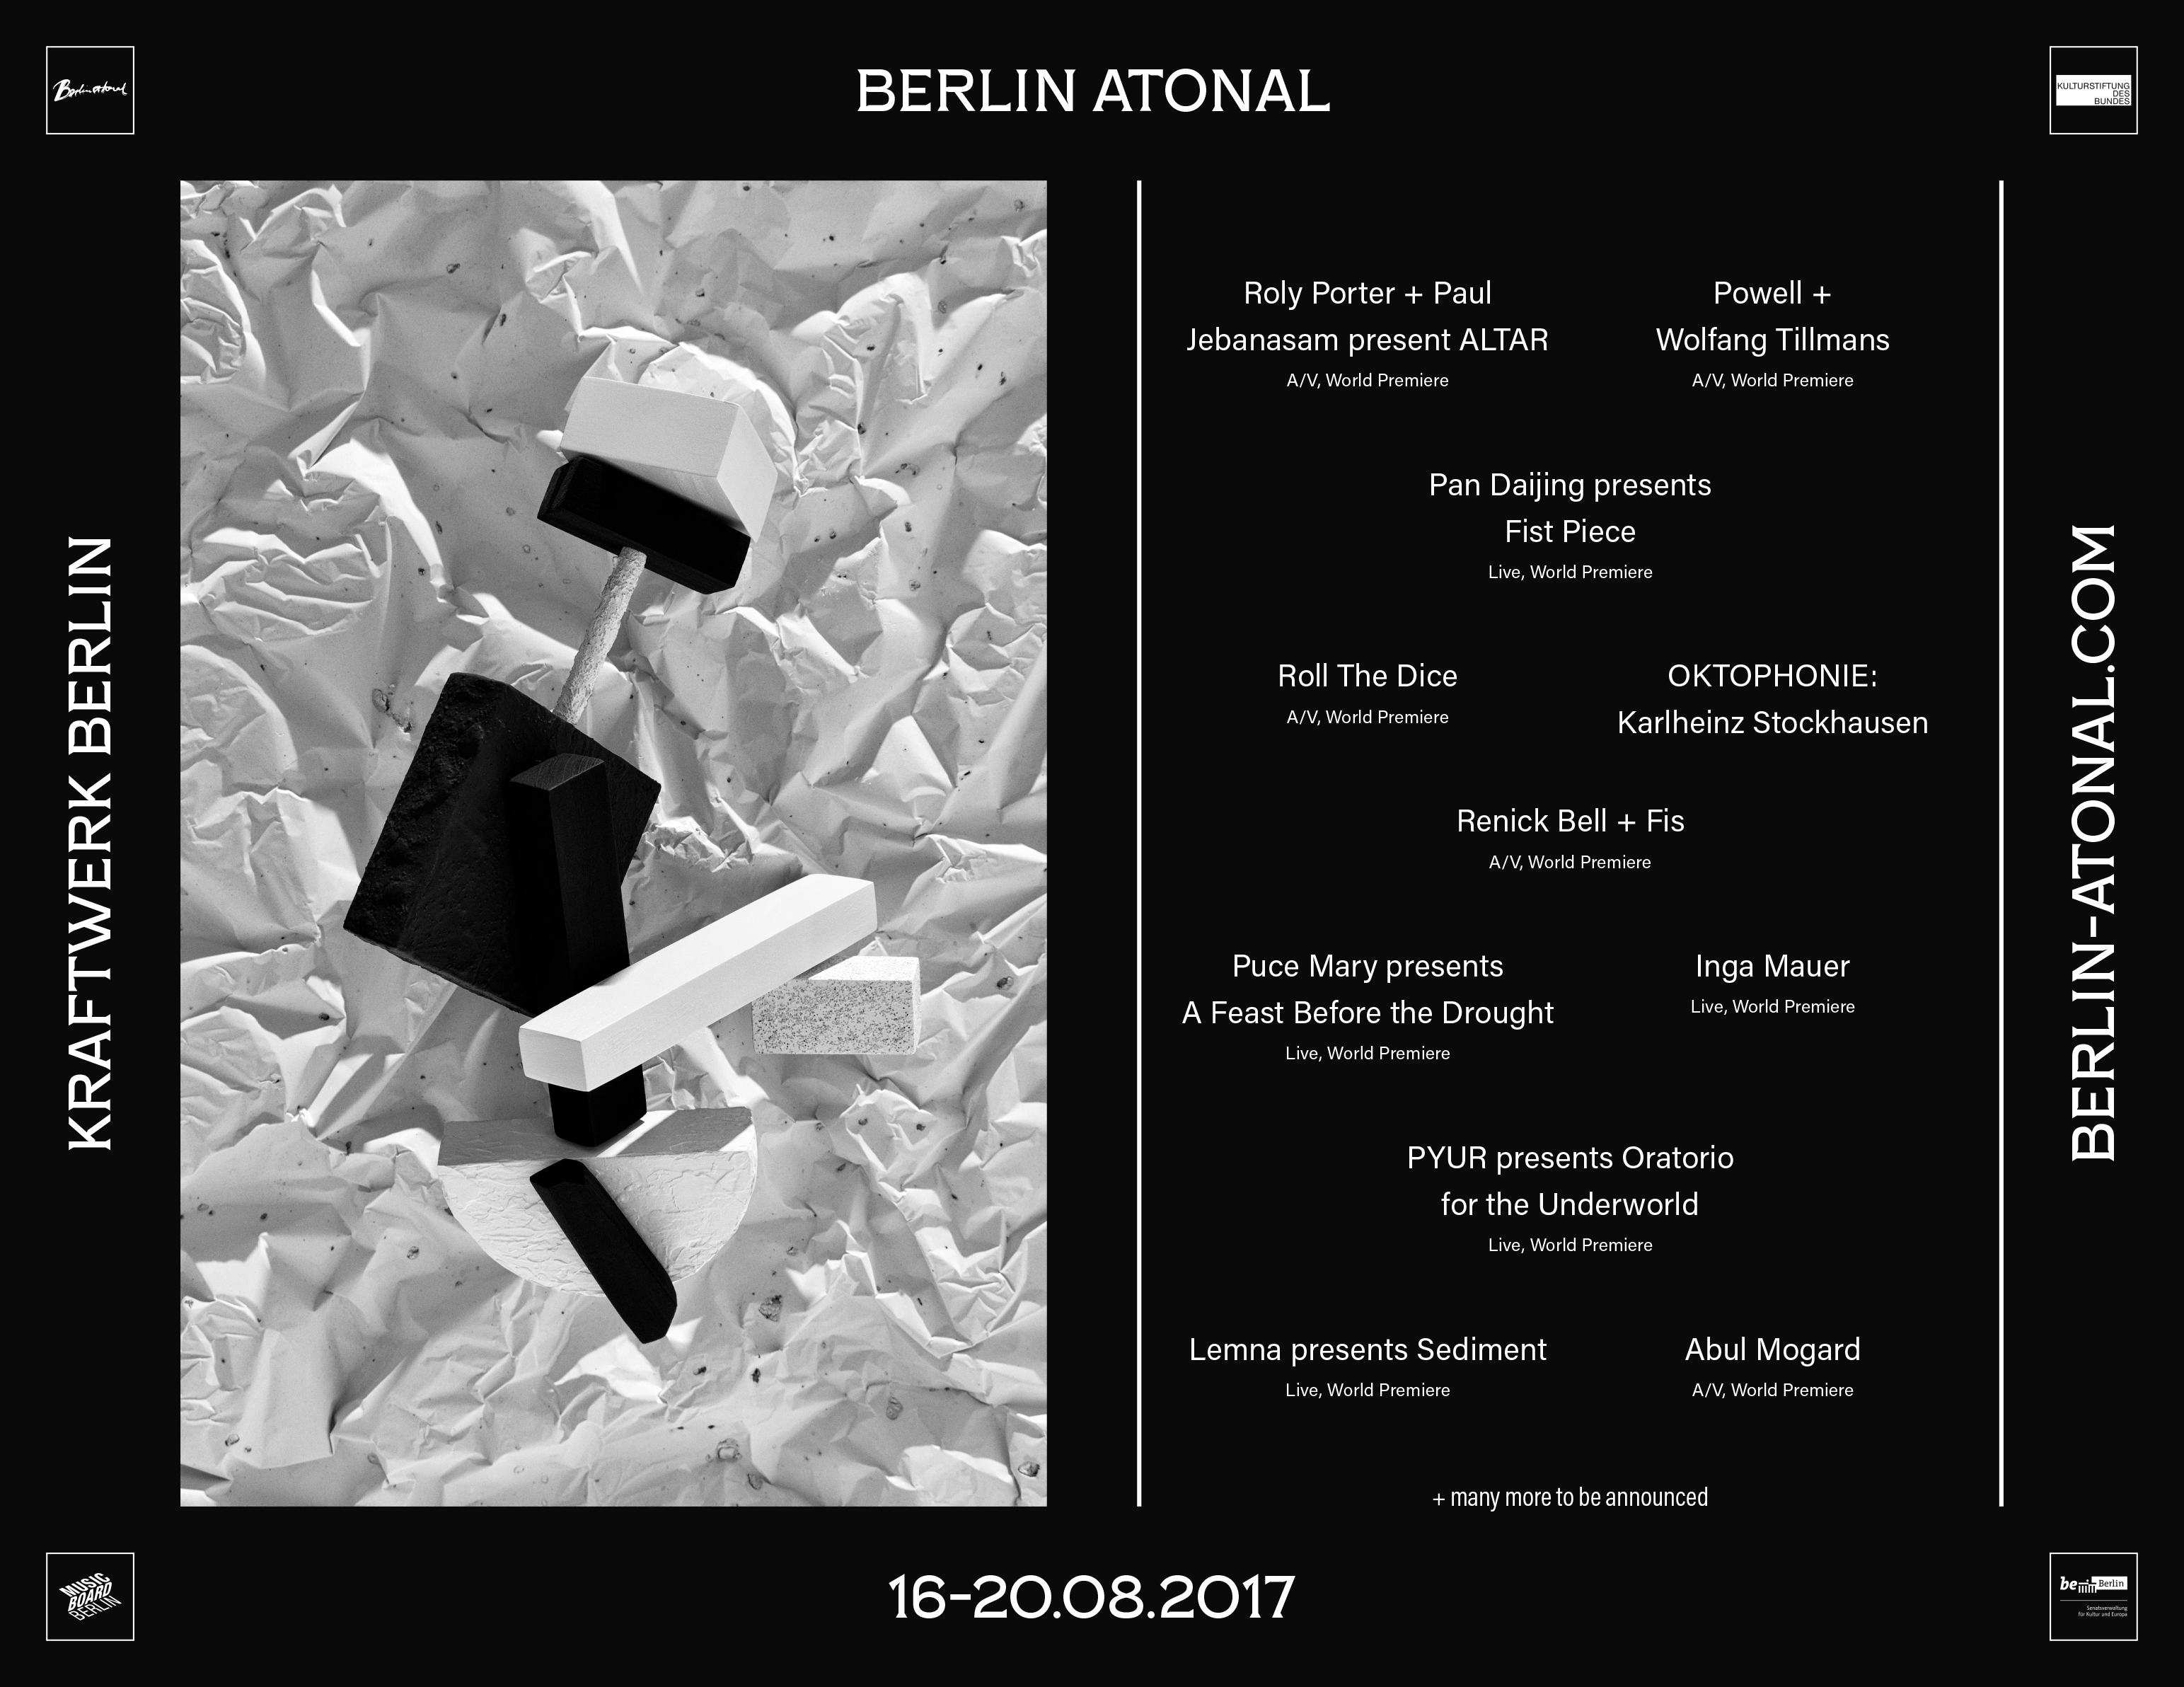 berlin-atonal-2017-first-announcement